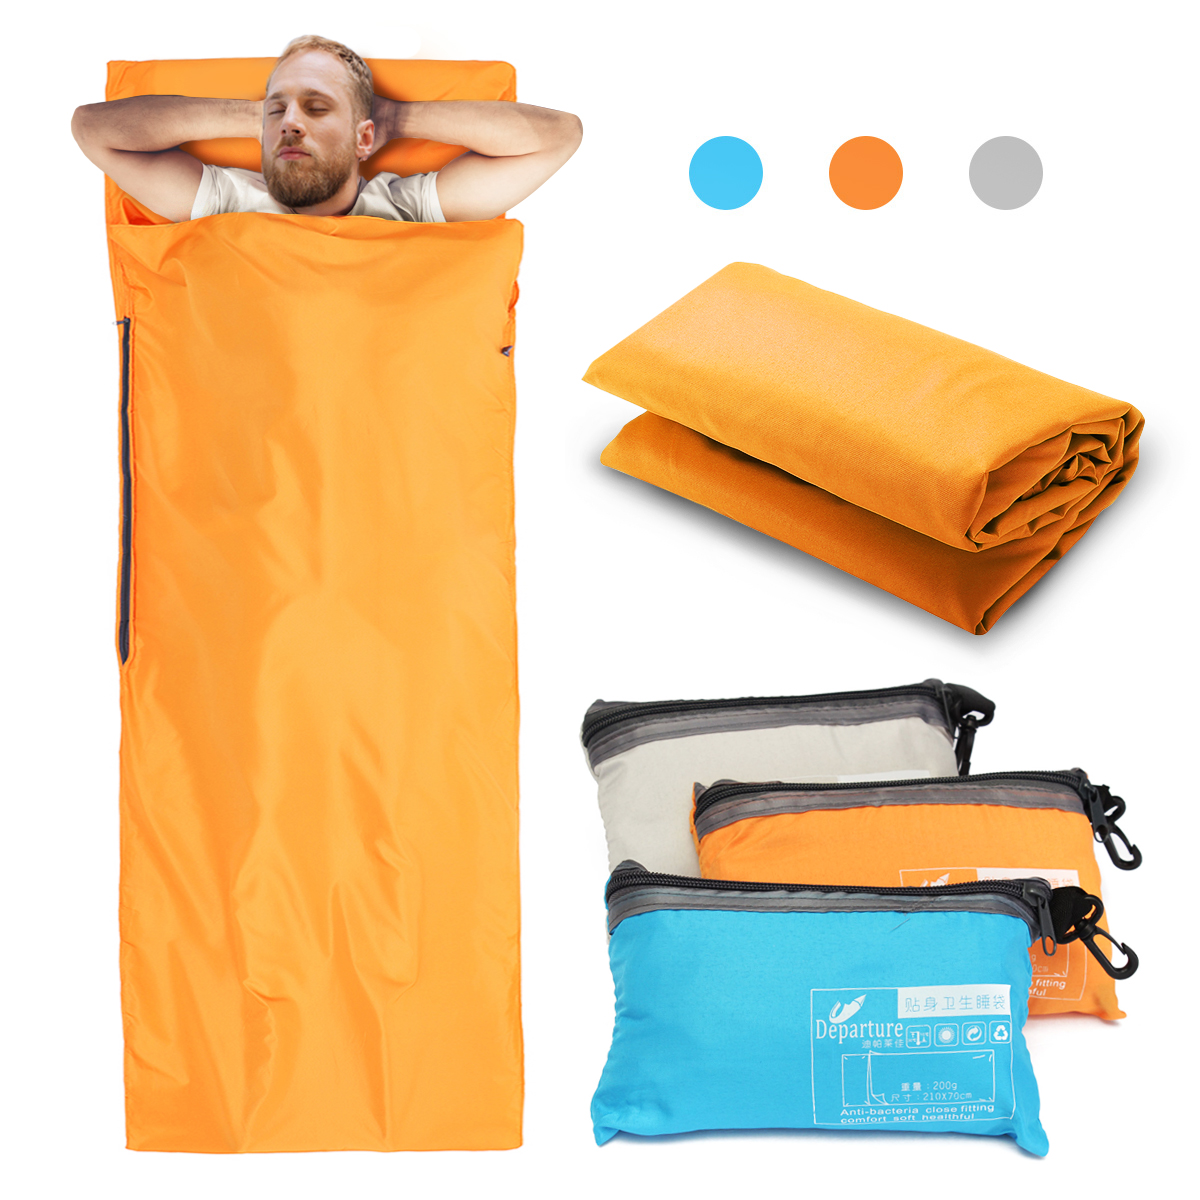 Travel Camping Sheet, Envelope Antimicrobial Soft Sleeping bag Liner - Compact Sleep Sheet with Lightweight Carry Bag for Travel,Youth Hostels, Picnic